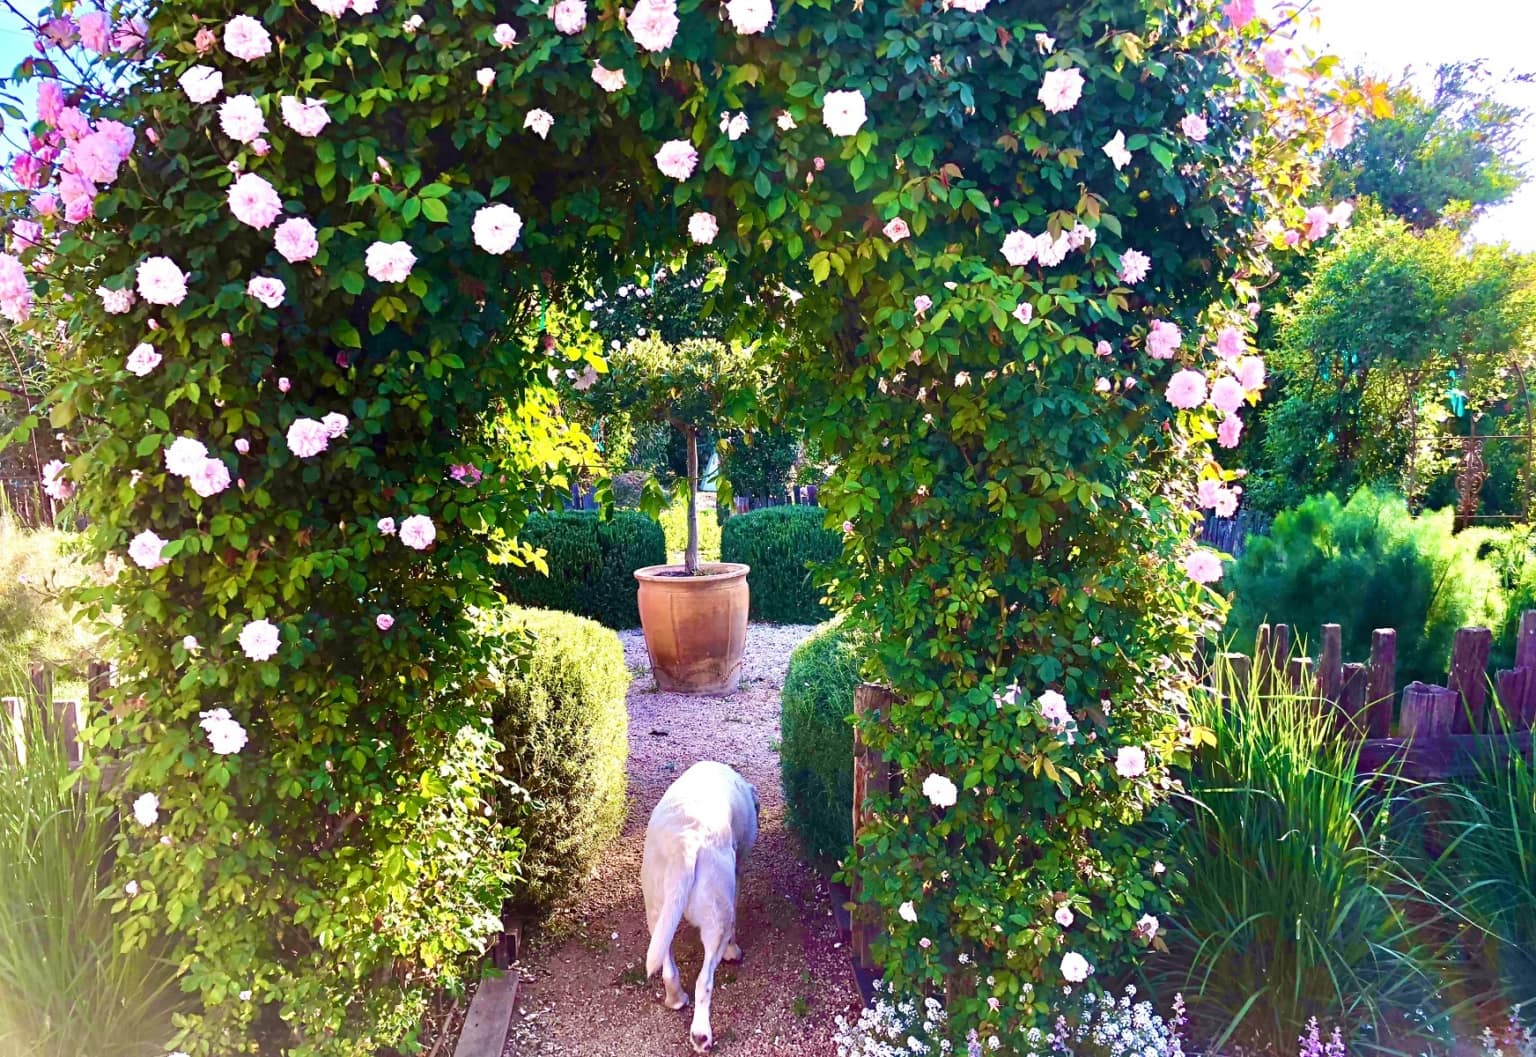 design blogger cindy hattersley's rose arbor